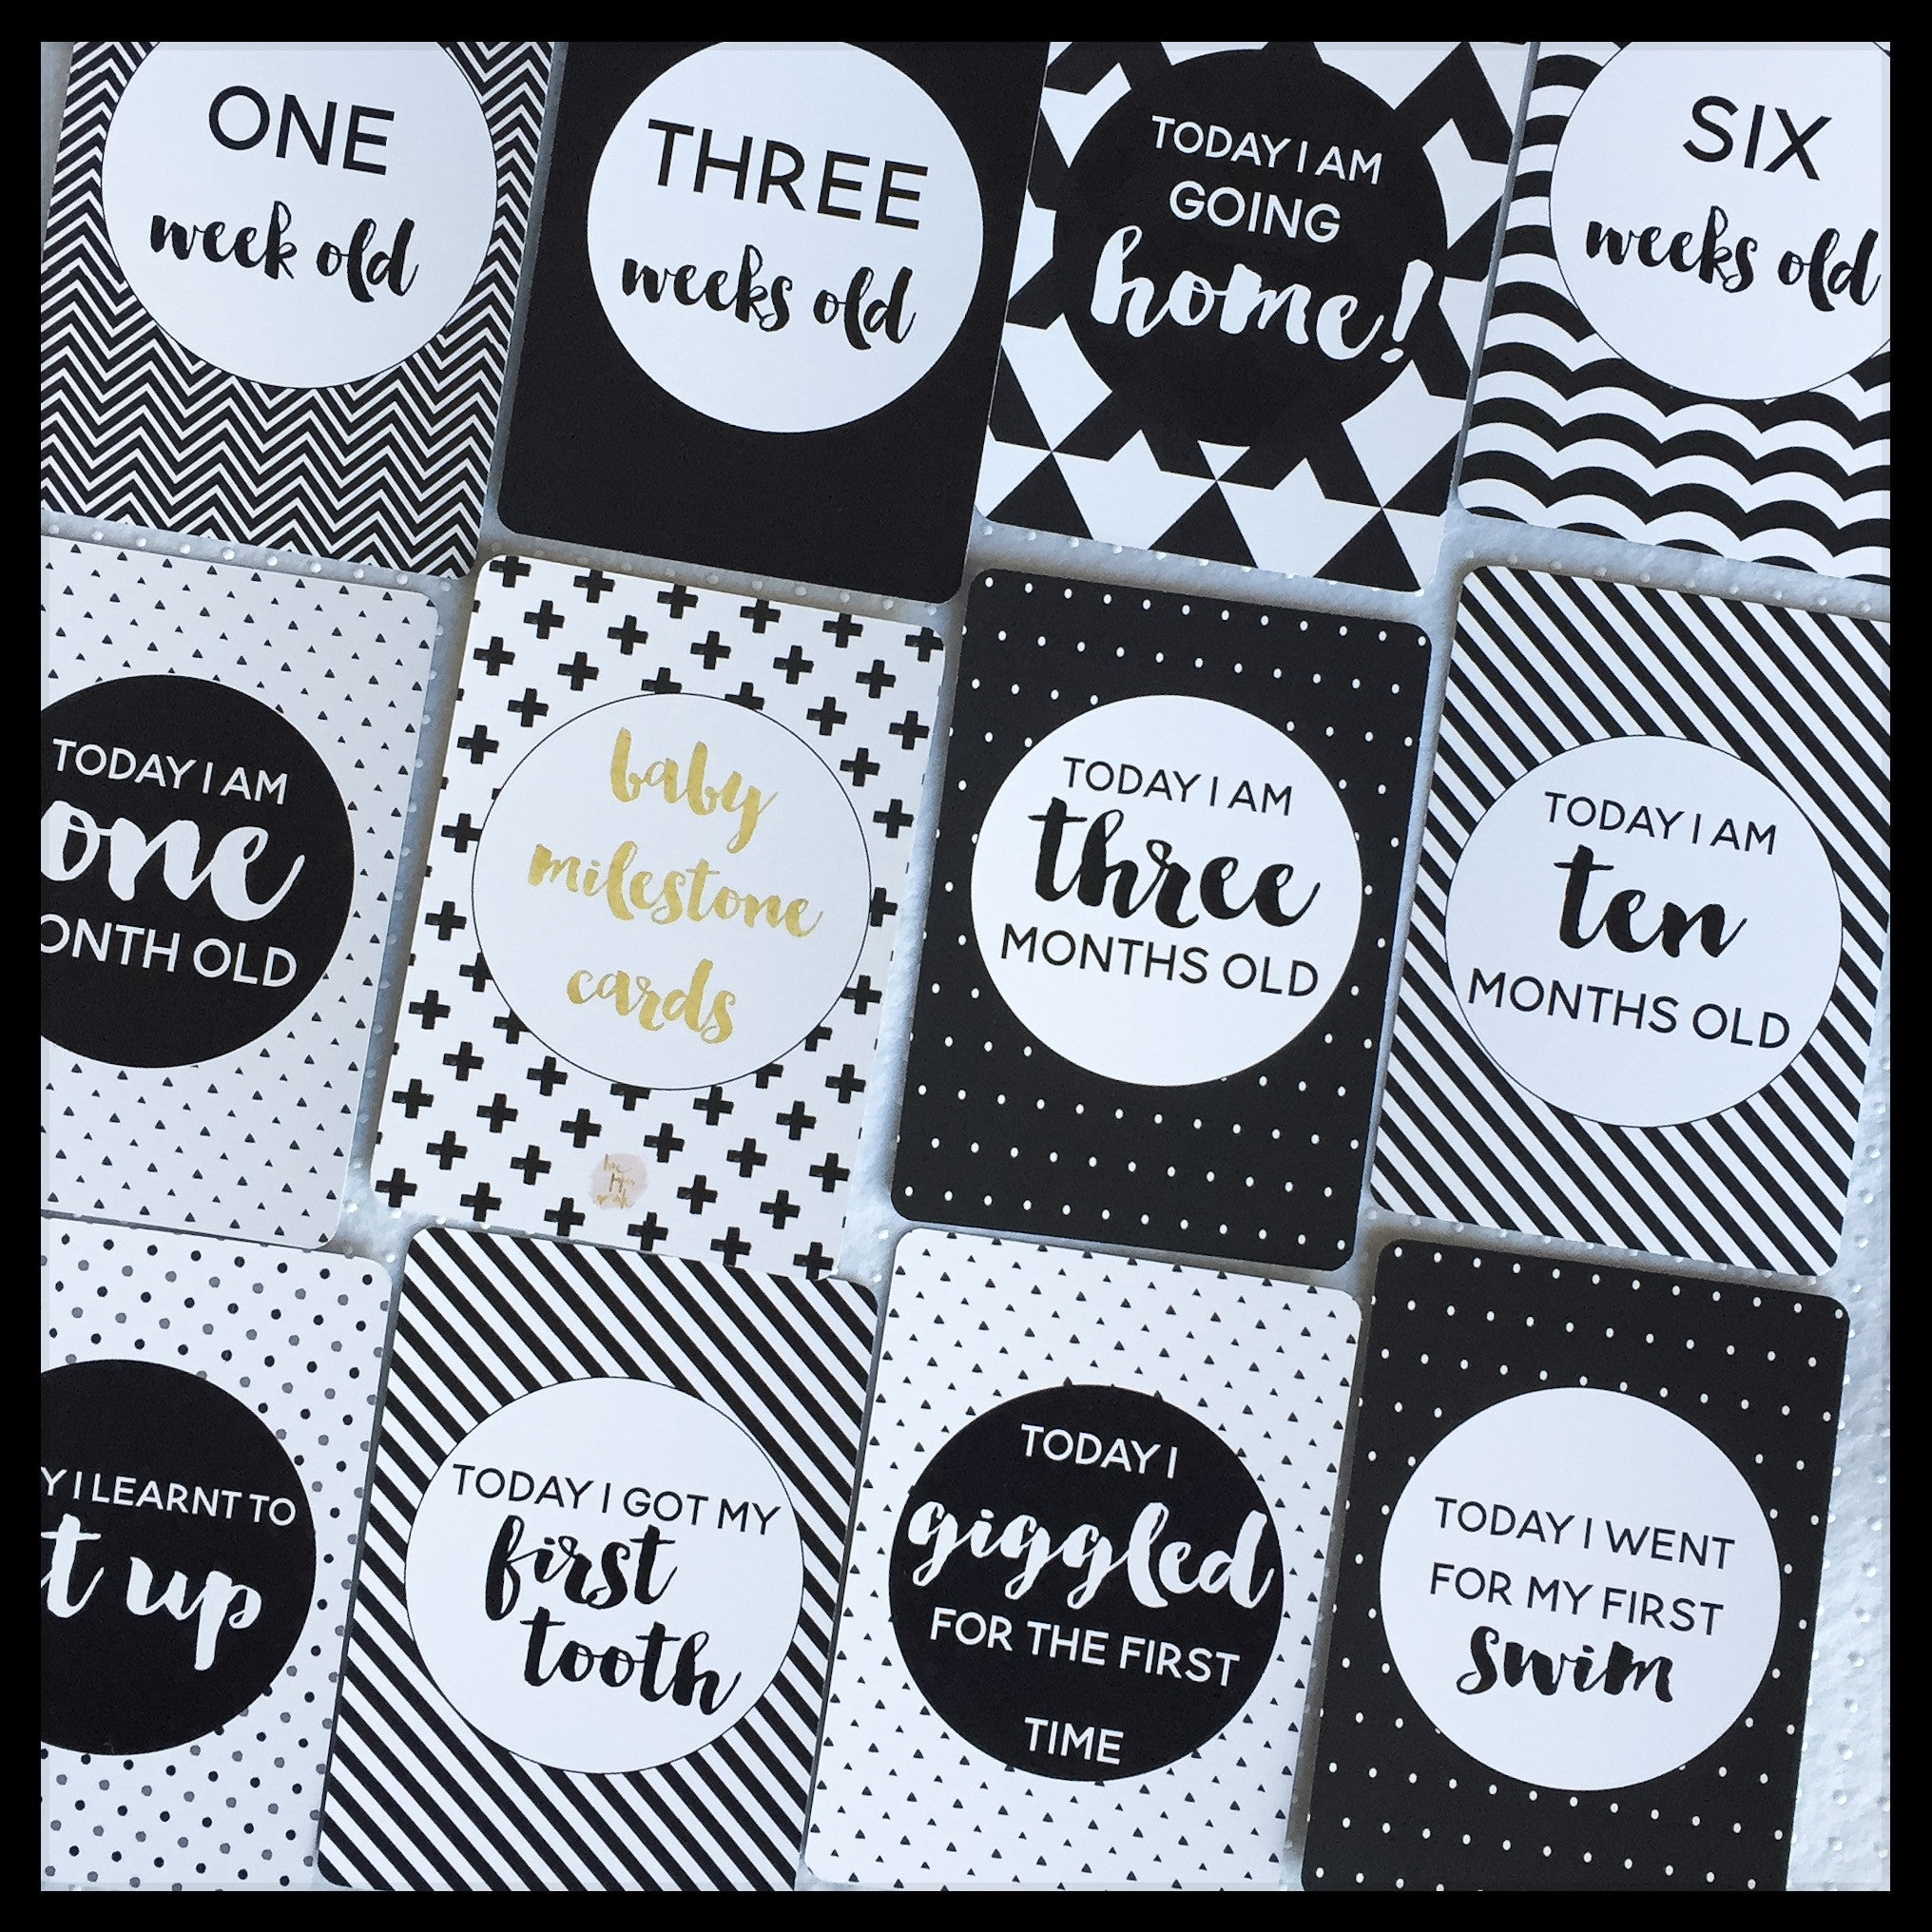 Baby Milestone Cards |  Classic Collection |  Monochrome | PRE-ORDER FOR SHIPPING 22 OCTOBER Stylish Baby Milestone Cards + Baby Announcement Baby Wraps + swaddles - - AfterPay - Free Shipping - lovepaperink.com.au